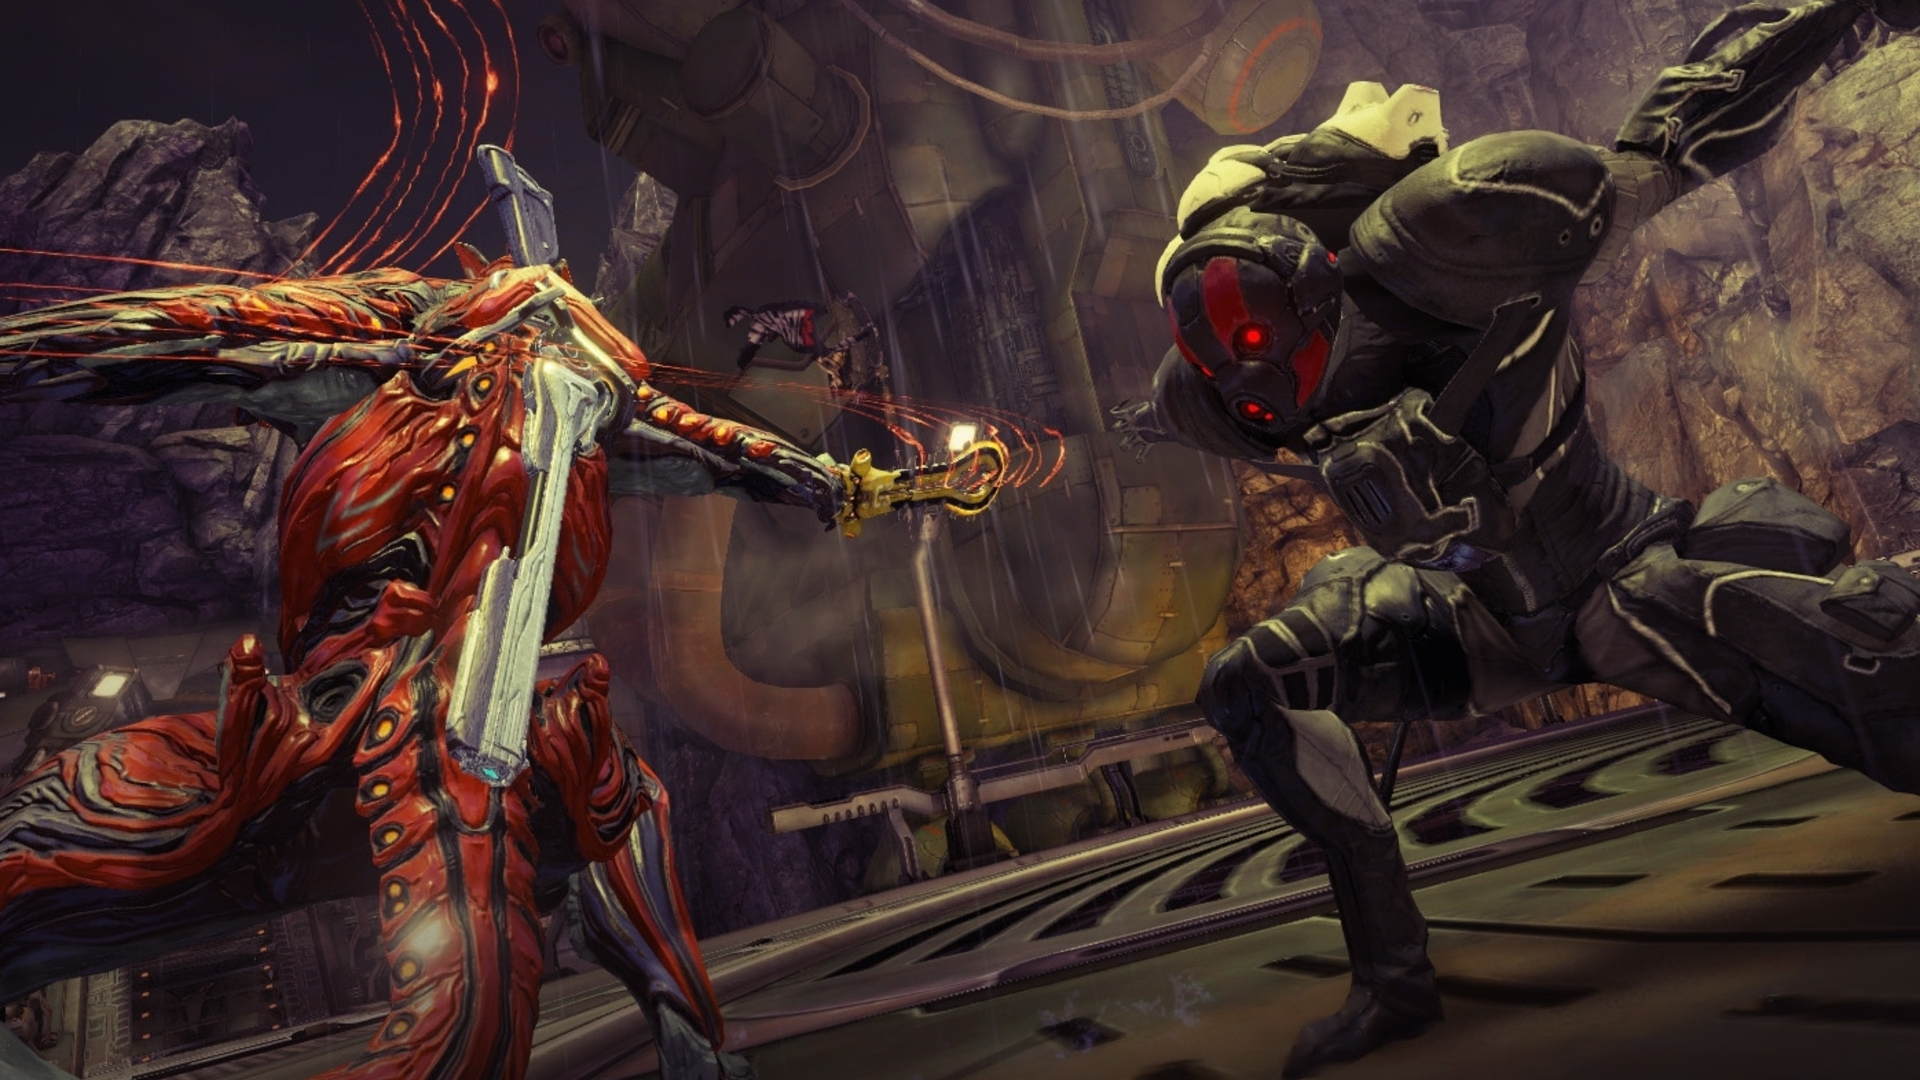 Warframe's TennoCon 2018 convention is happening in July, tickets go on sale this week